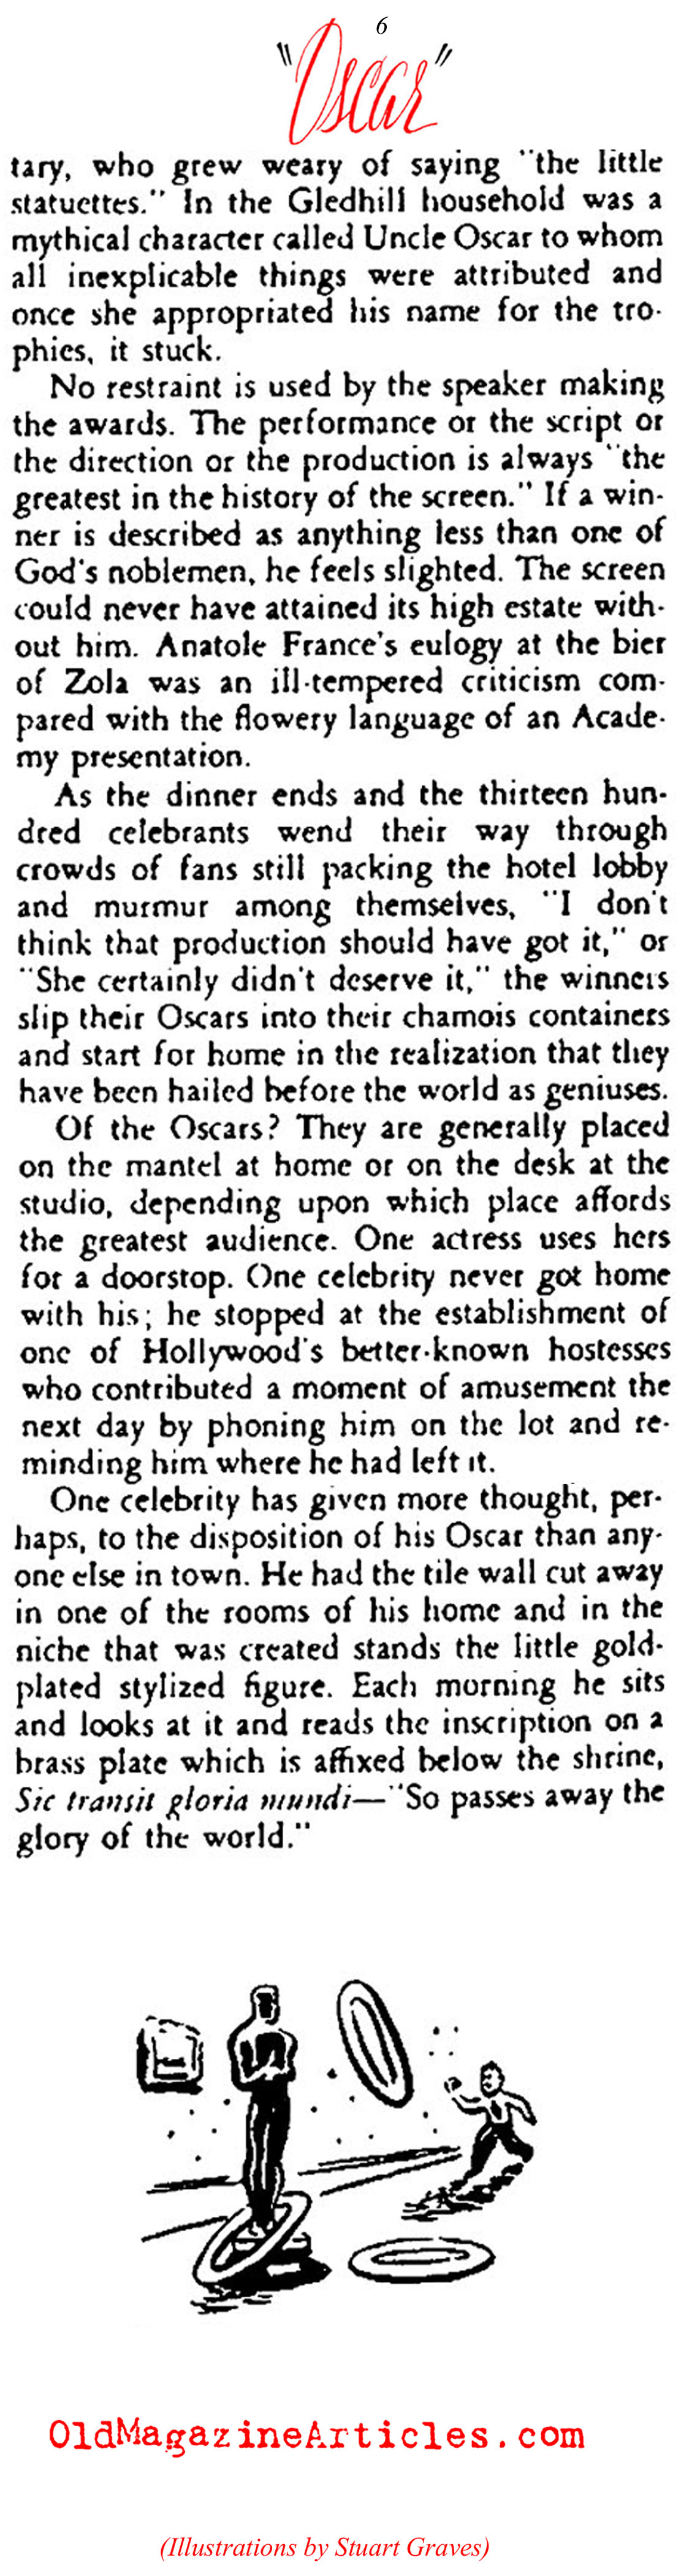 The Oscars: Hollywoods Self-Adoration Fest (Stage Magazine, 1938)